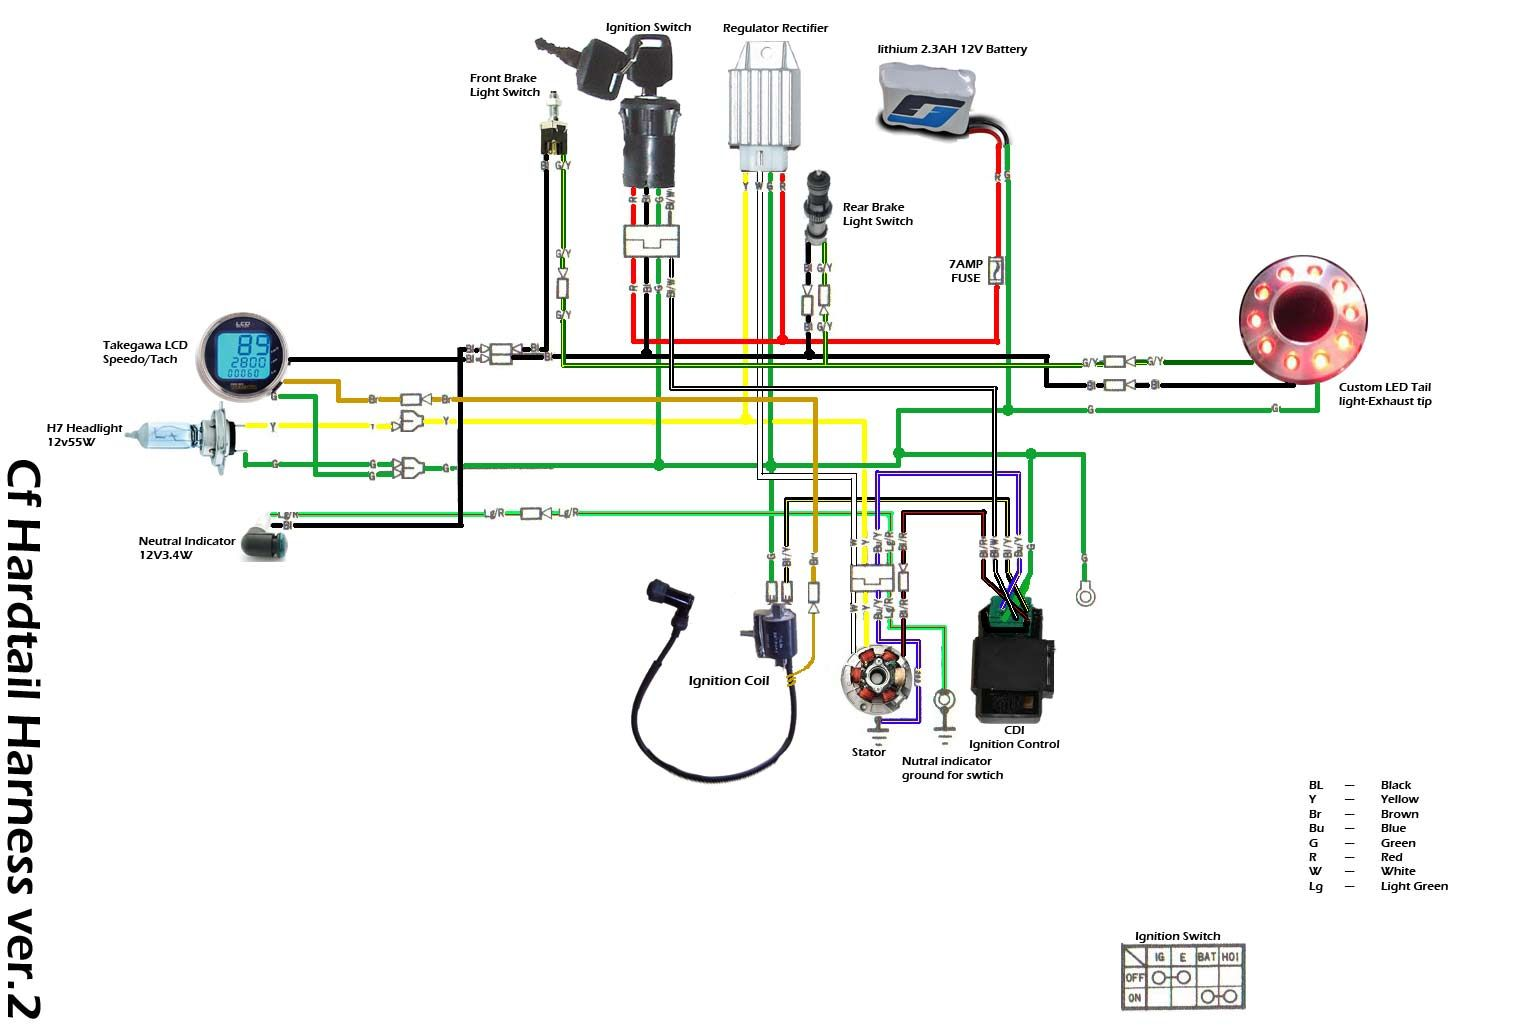 hight resolution of wrg 2891 110 wiring diagrambuggy wiring schematic as well as vdo diesel tachometer wiring diagram